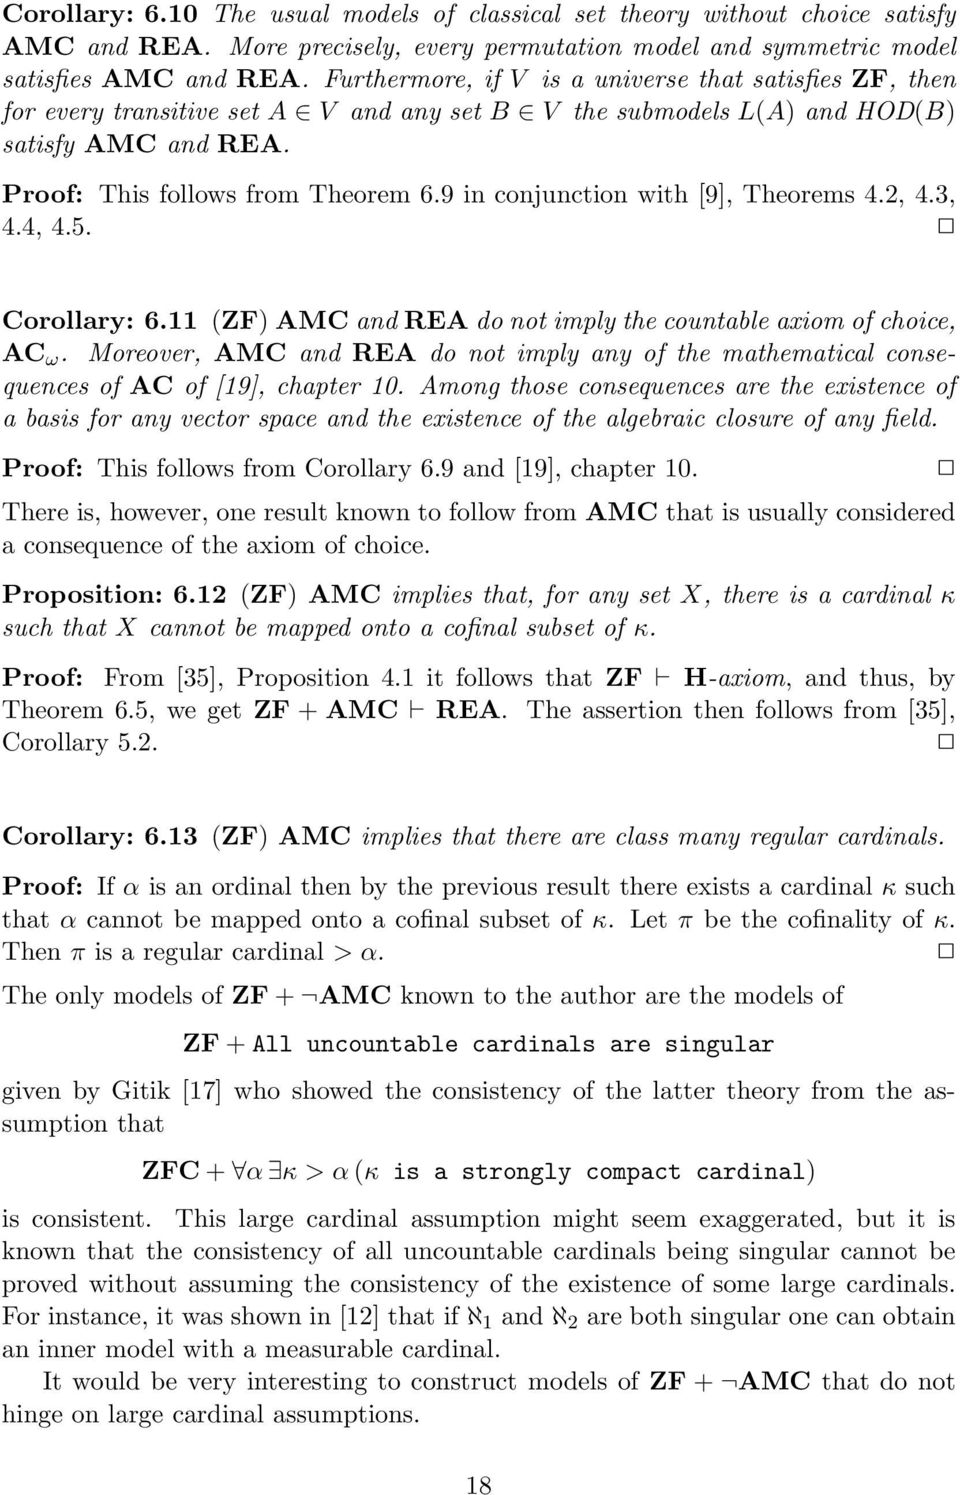 9 in conjunction with [9], Theorems 4.2, 4.3, 4.4, 4.5. Corollary: 6.11 (ZF) AMC and REA do not imply the countable axiom of choice, AC ω.